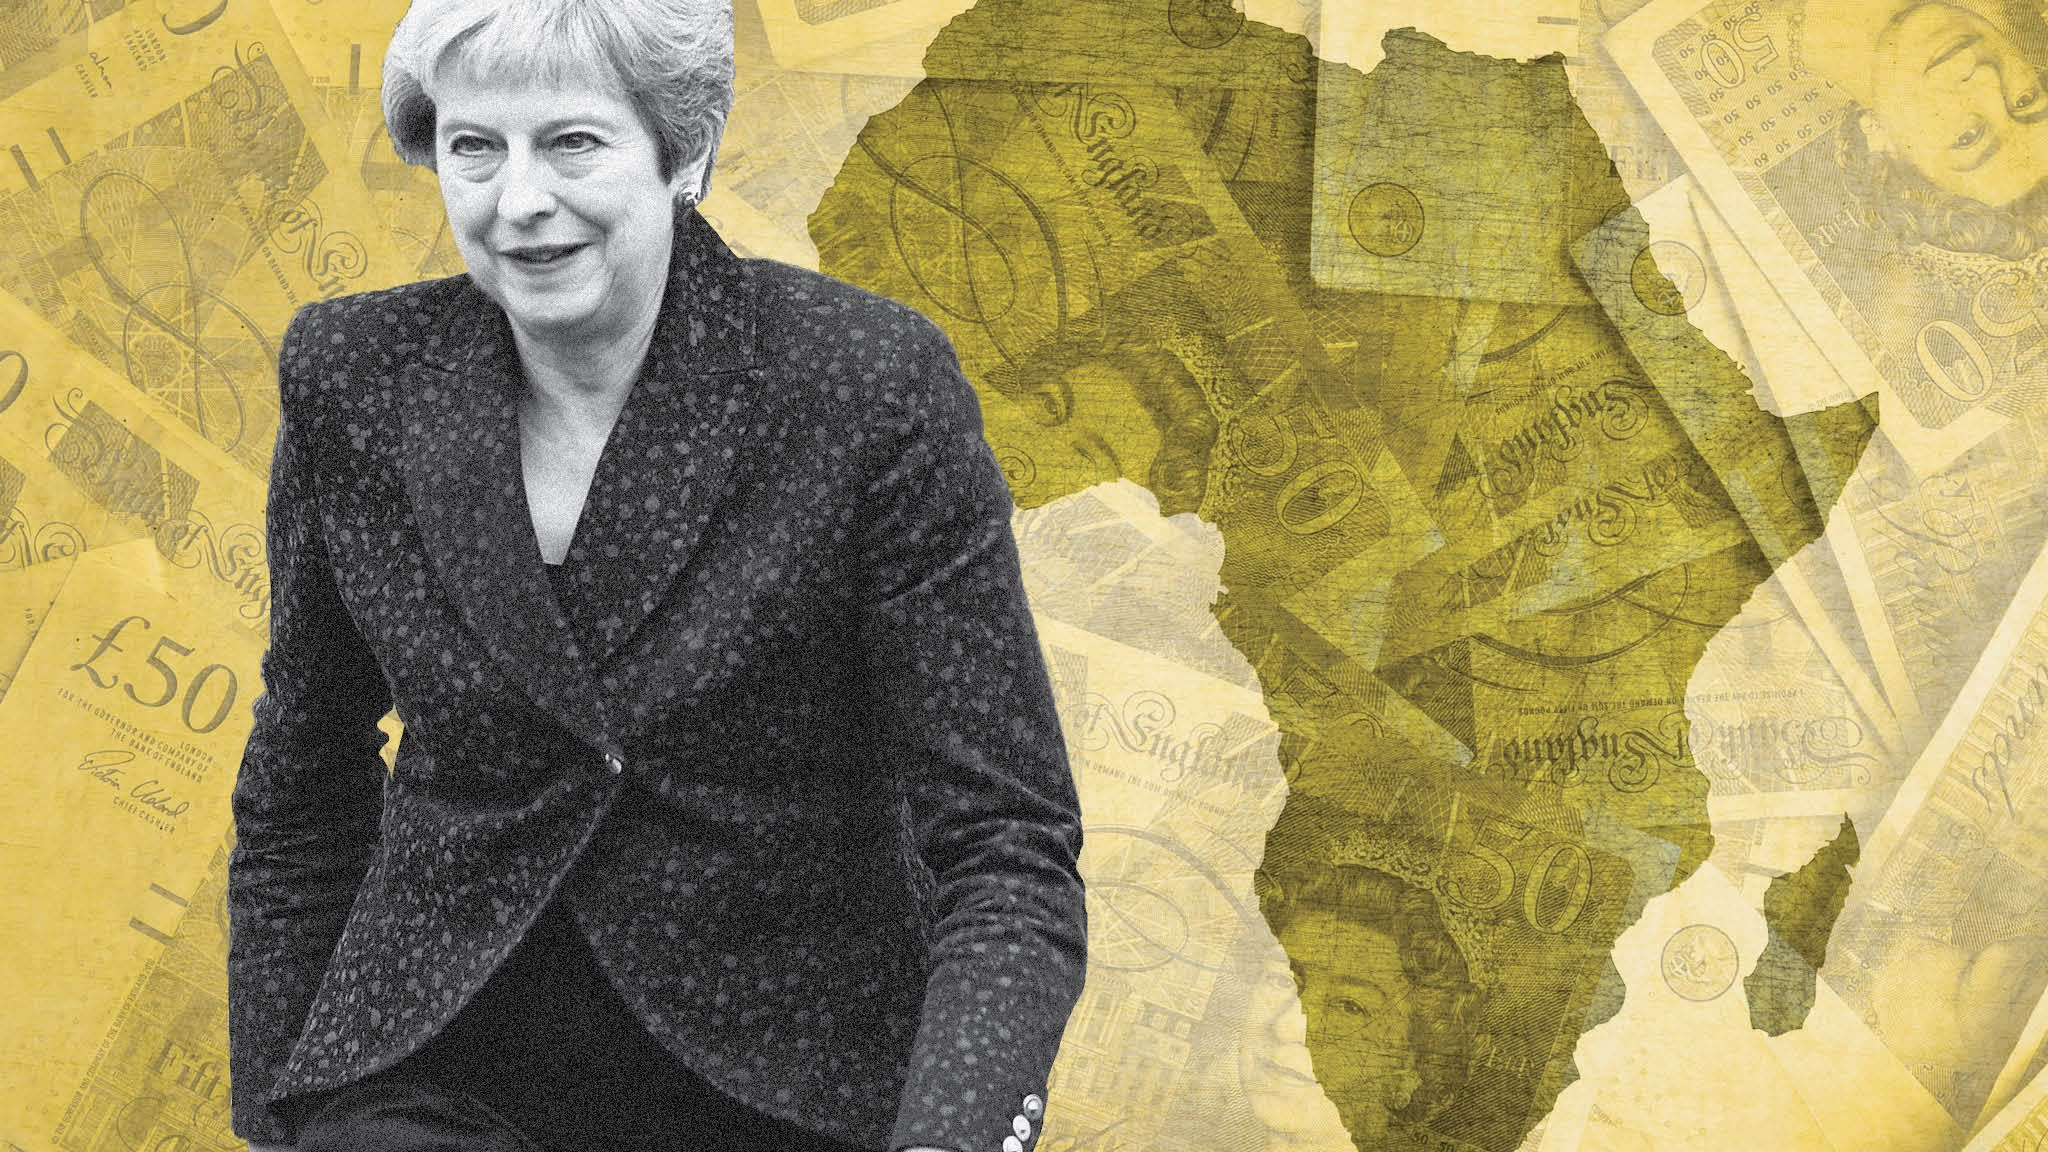 Can Theresa May build a 'new partnership' with Africa post-Brexit?